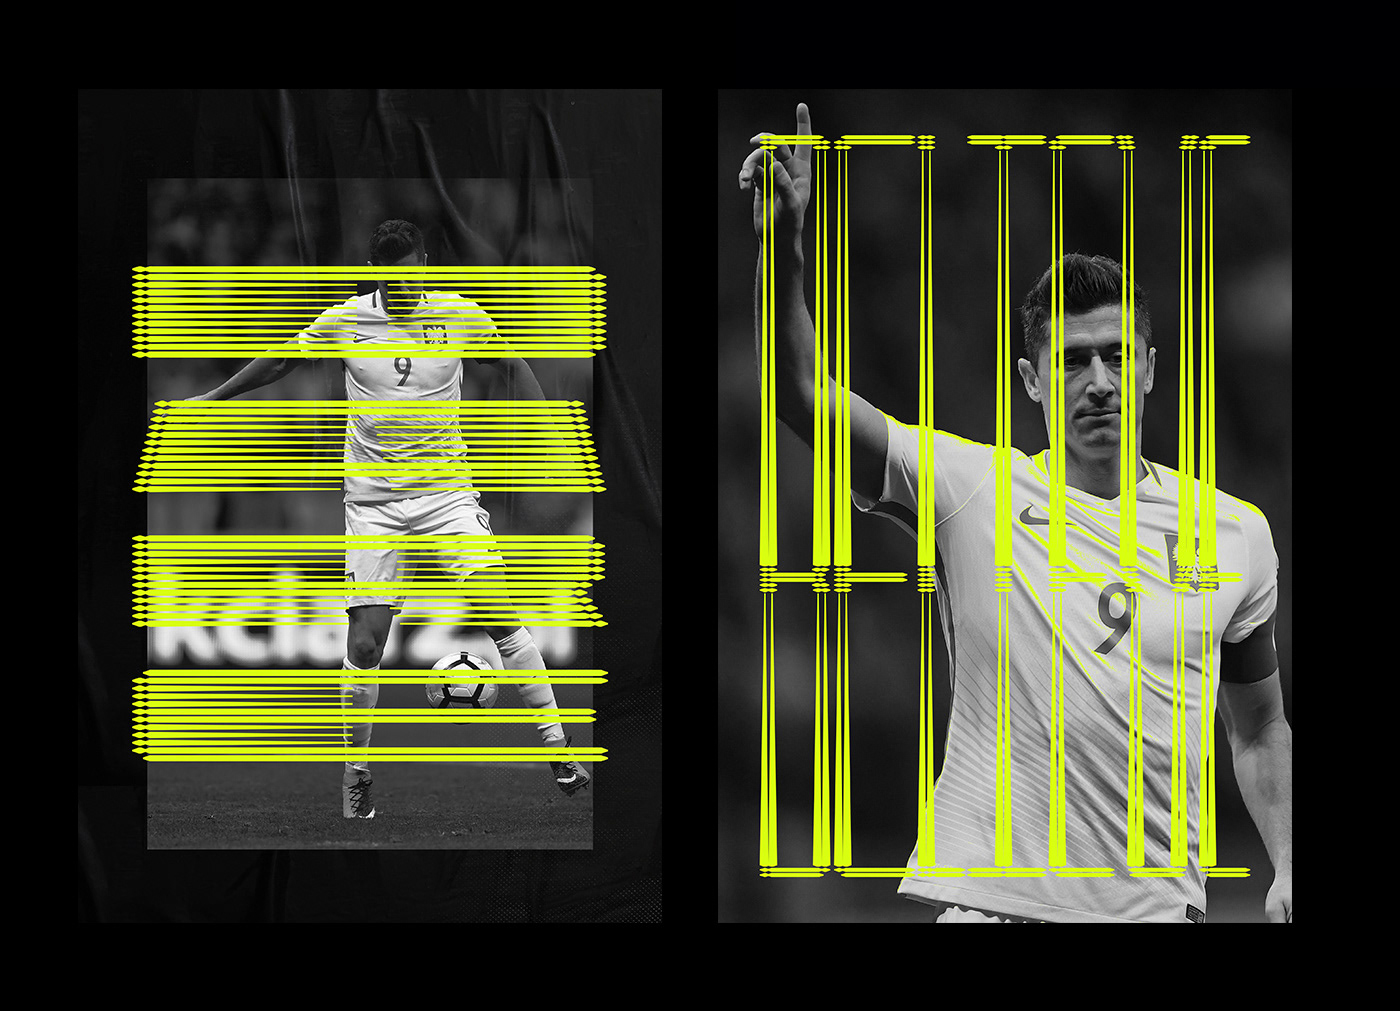 Nike CGI visuals 3D Advertising  typography   animation  motion lettering design